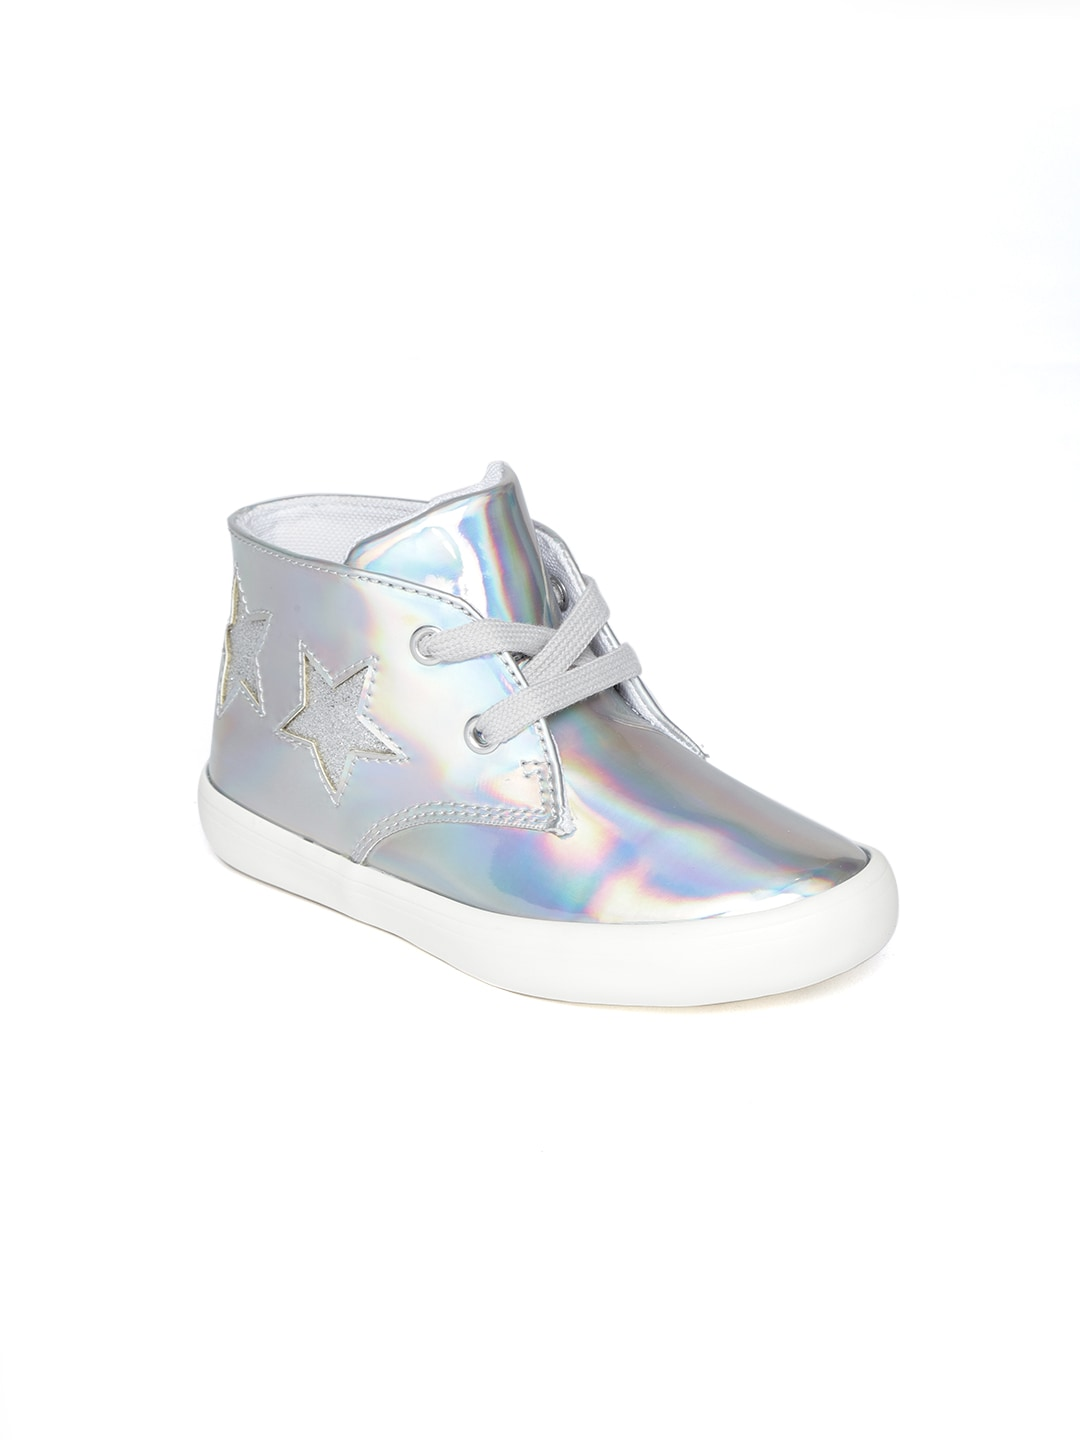 22fda67dda9 Girls Casual Shoes- Buy Casual Shoes for Girls online in India